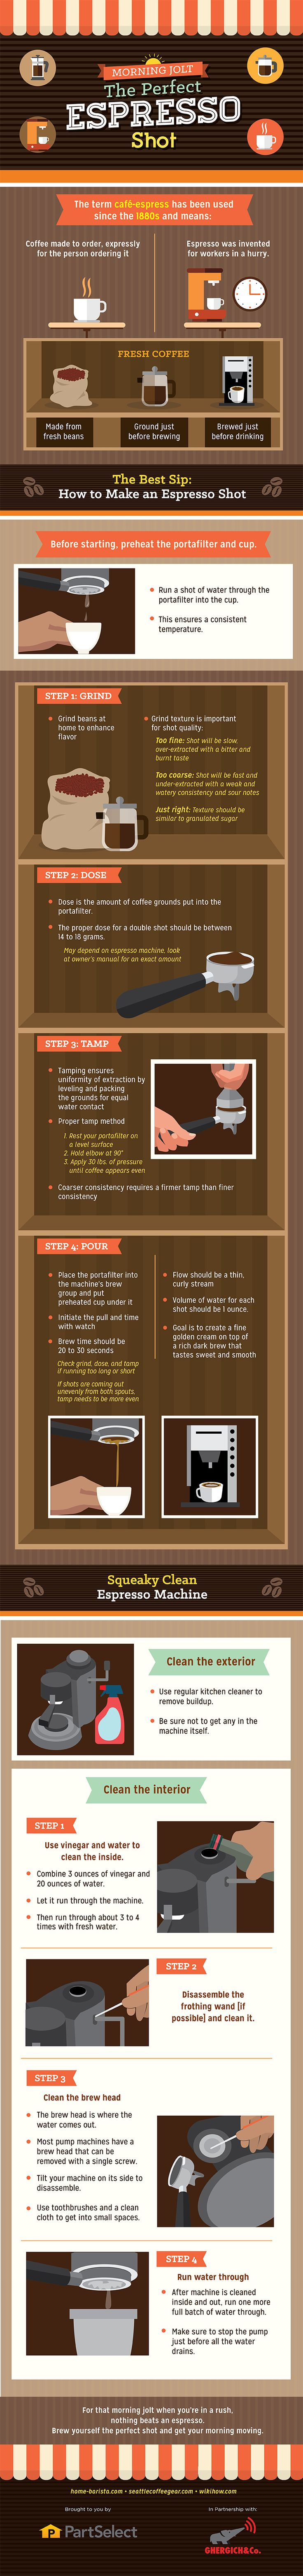 How To Make The Perfect Espresso Infographic